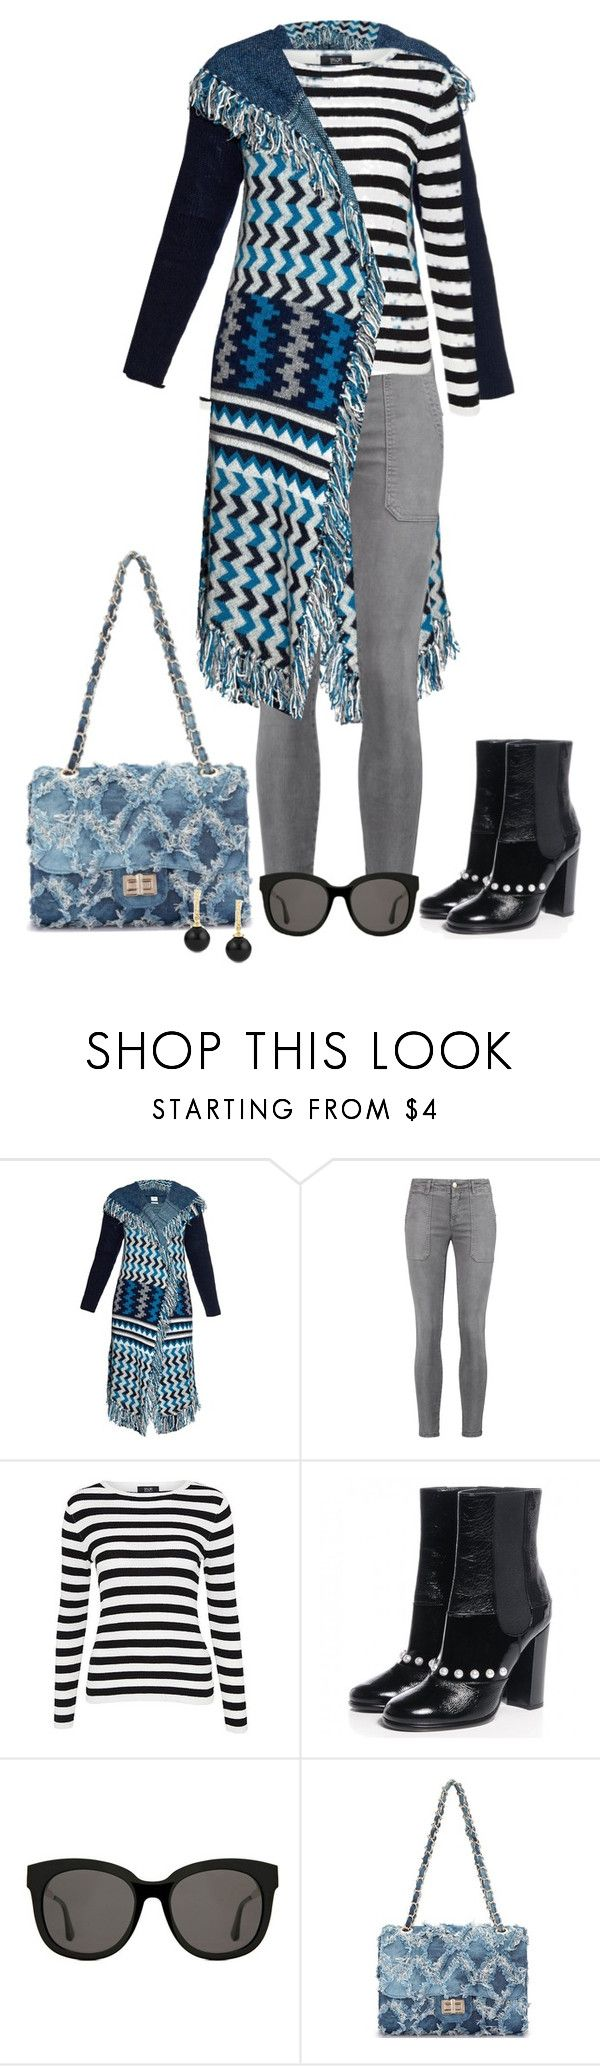 """Untitled #3305"" by elia72 ❤ liked on Polyvore featuring Banjo & Matilda, Current/Elliott, Chanel, Gentle Monster and David Yurman"